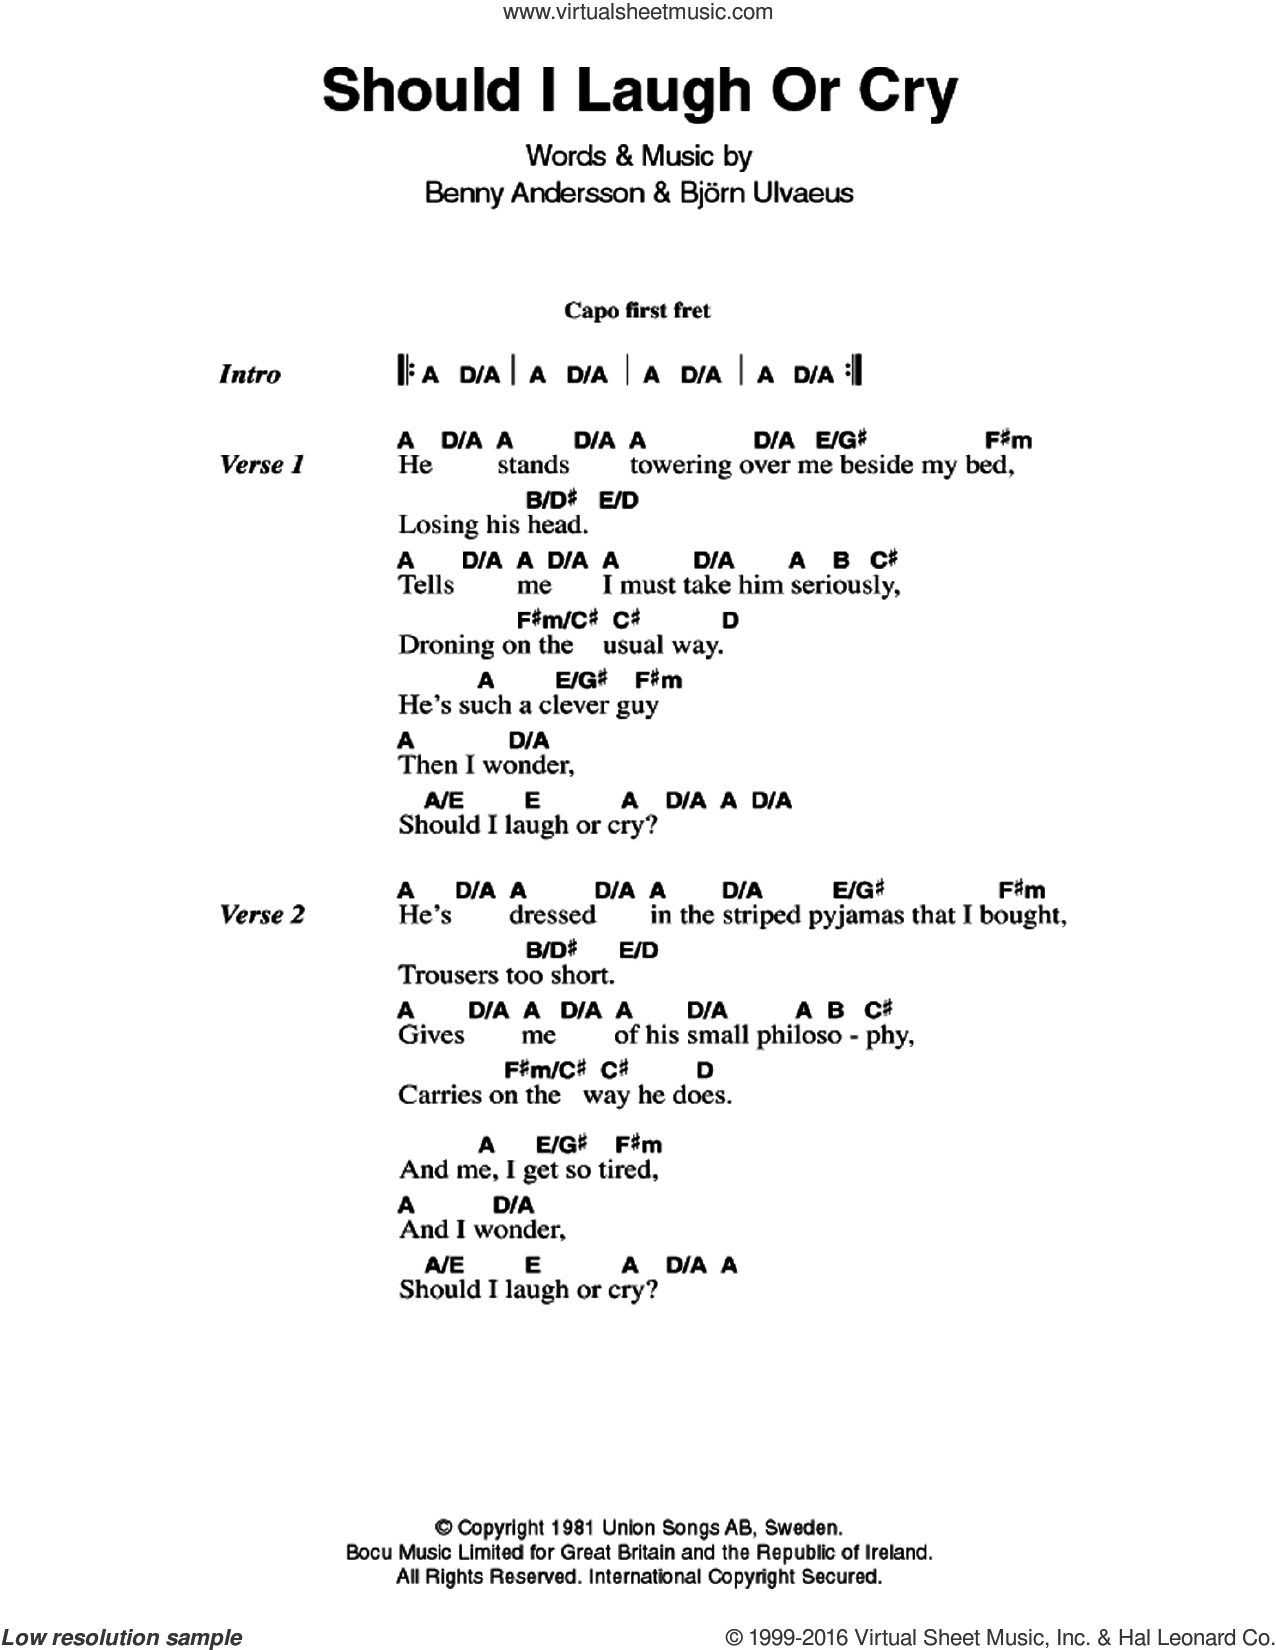 Should I Laugh Or Cry sheet music for guitar (chords) by ABBA, Benny Andersson and Bjorn Ulvaeus, intermediate skill level